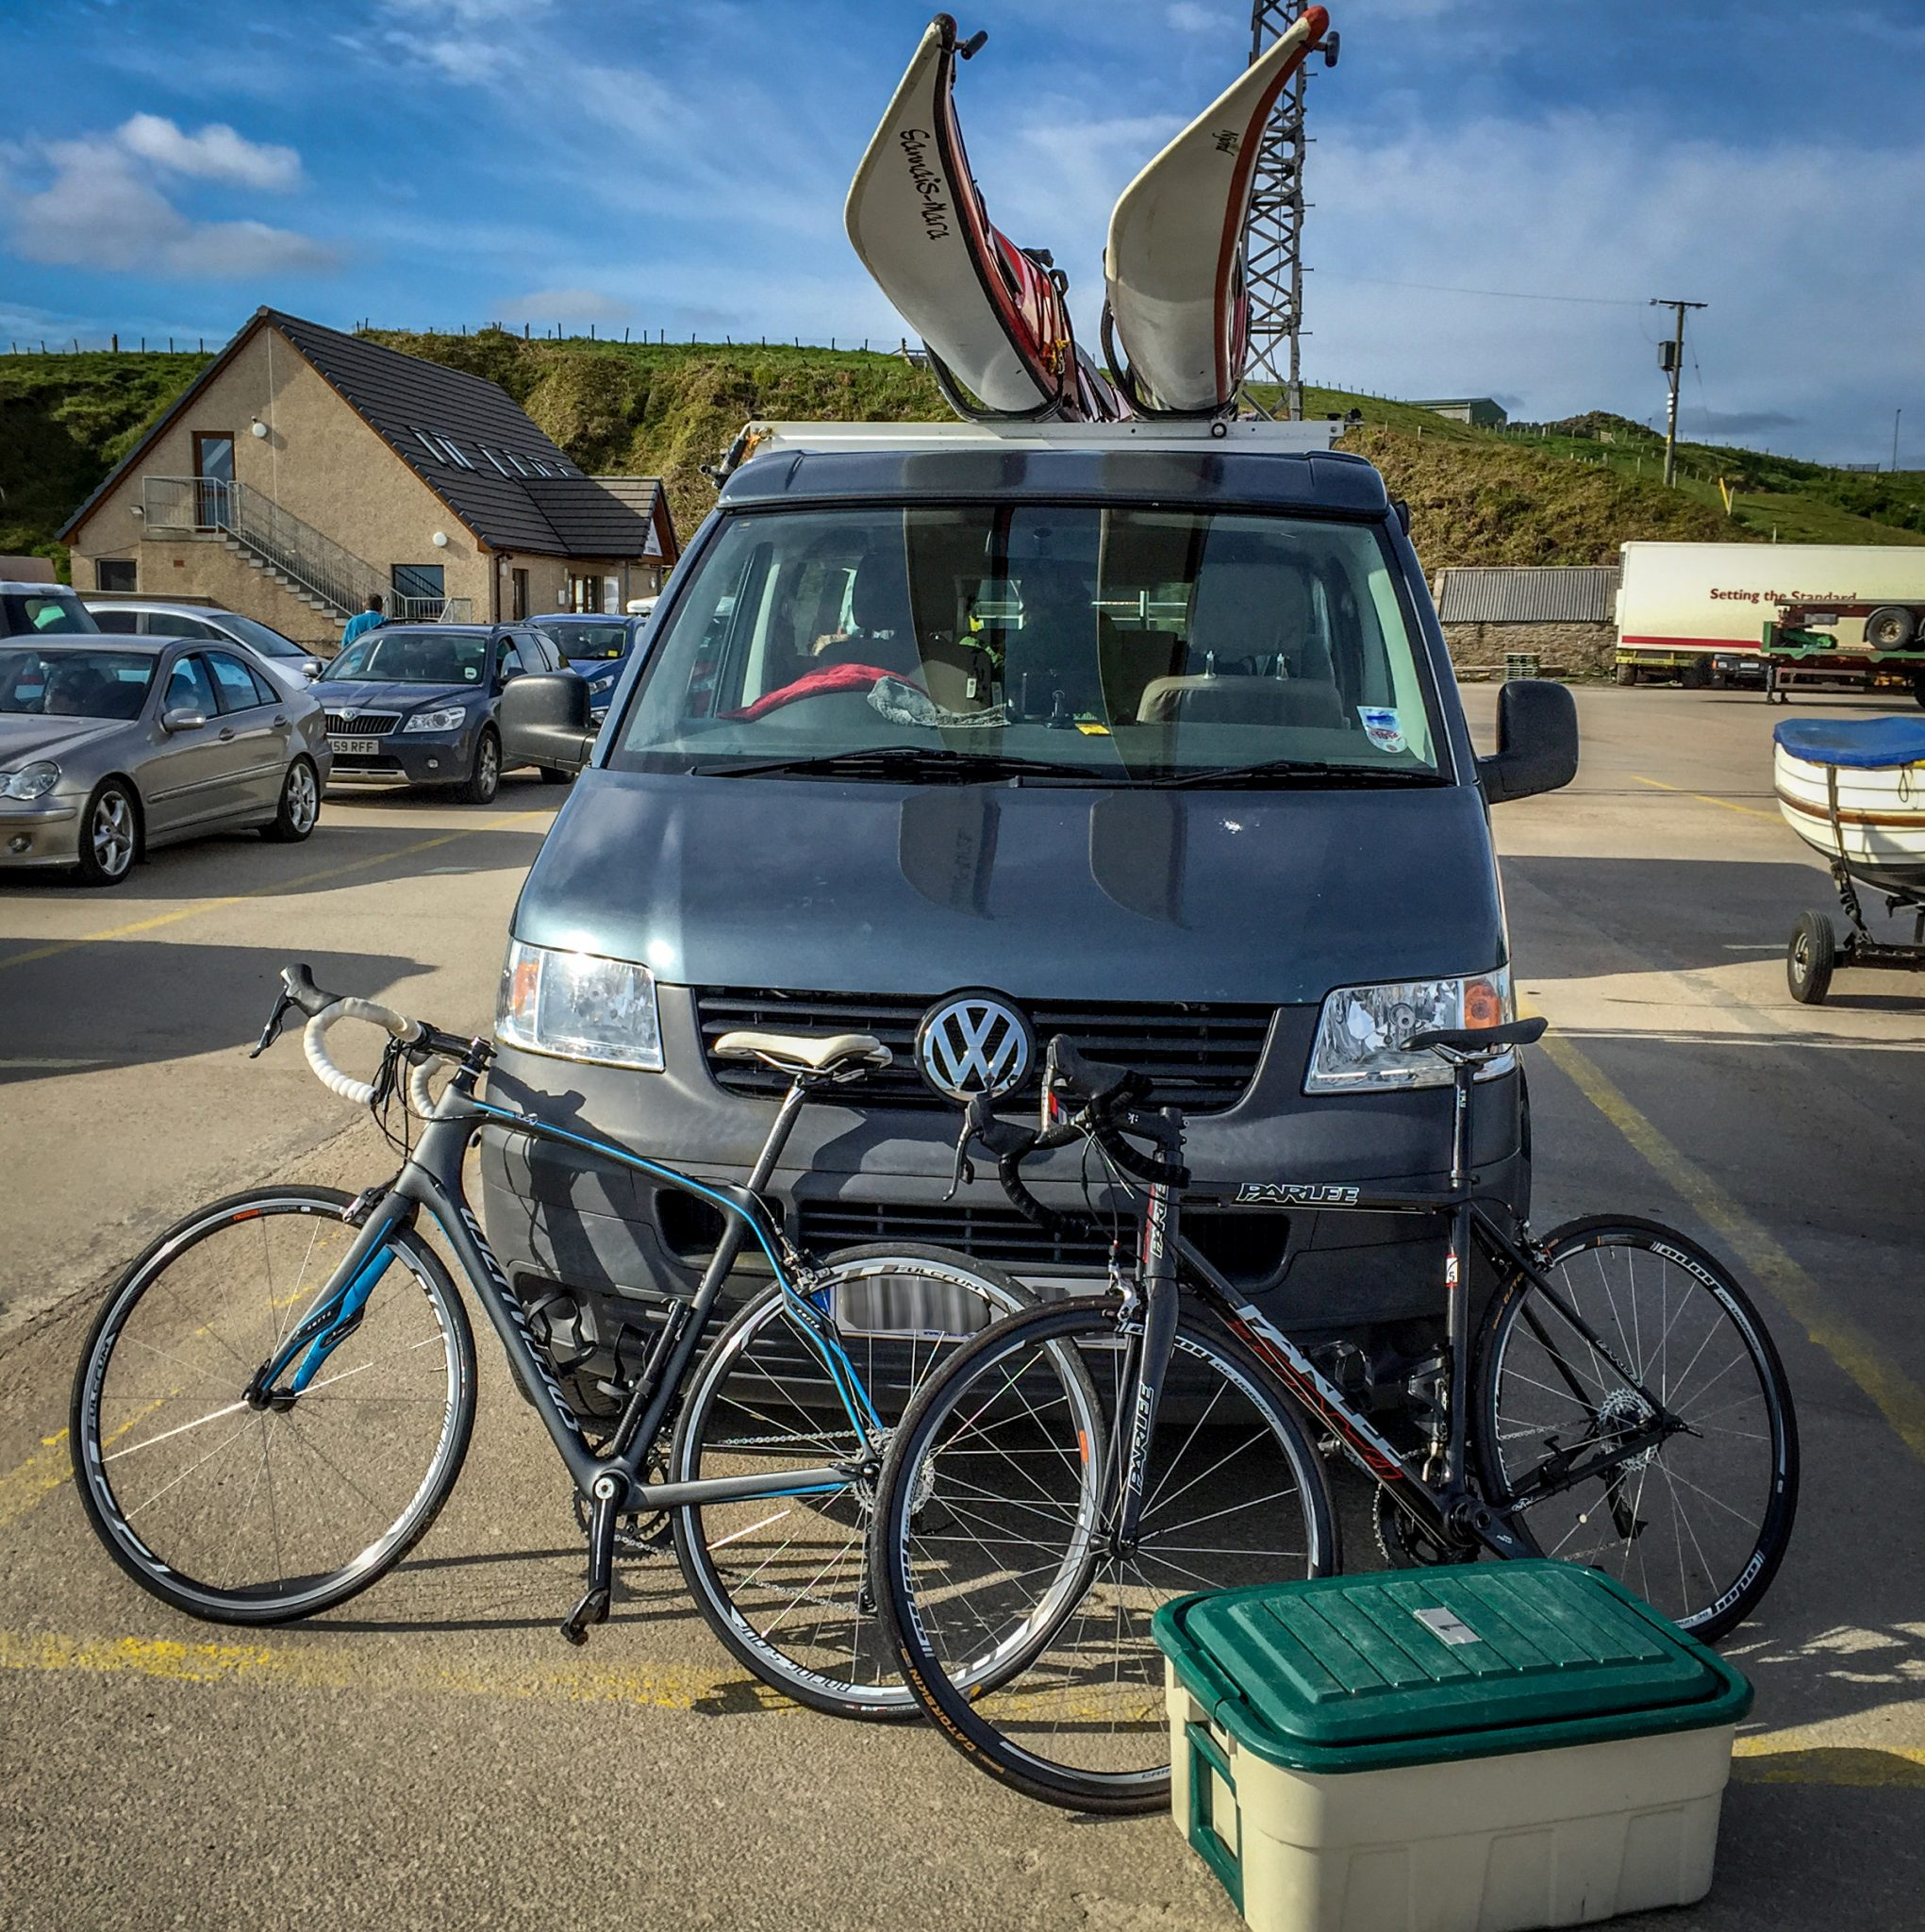 Campervan ready for anything